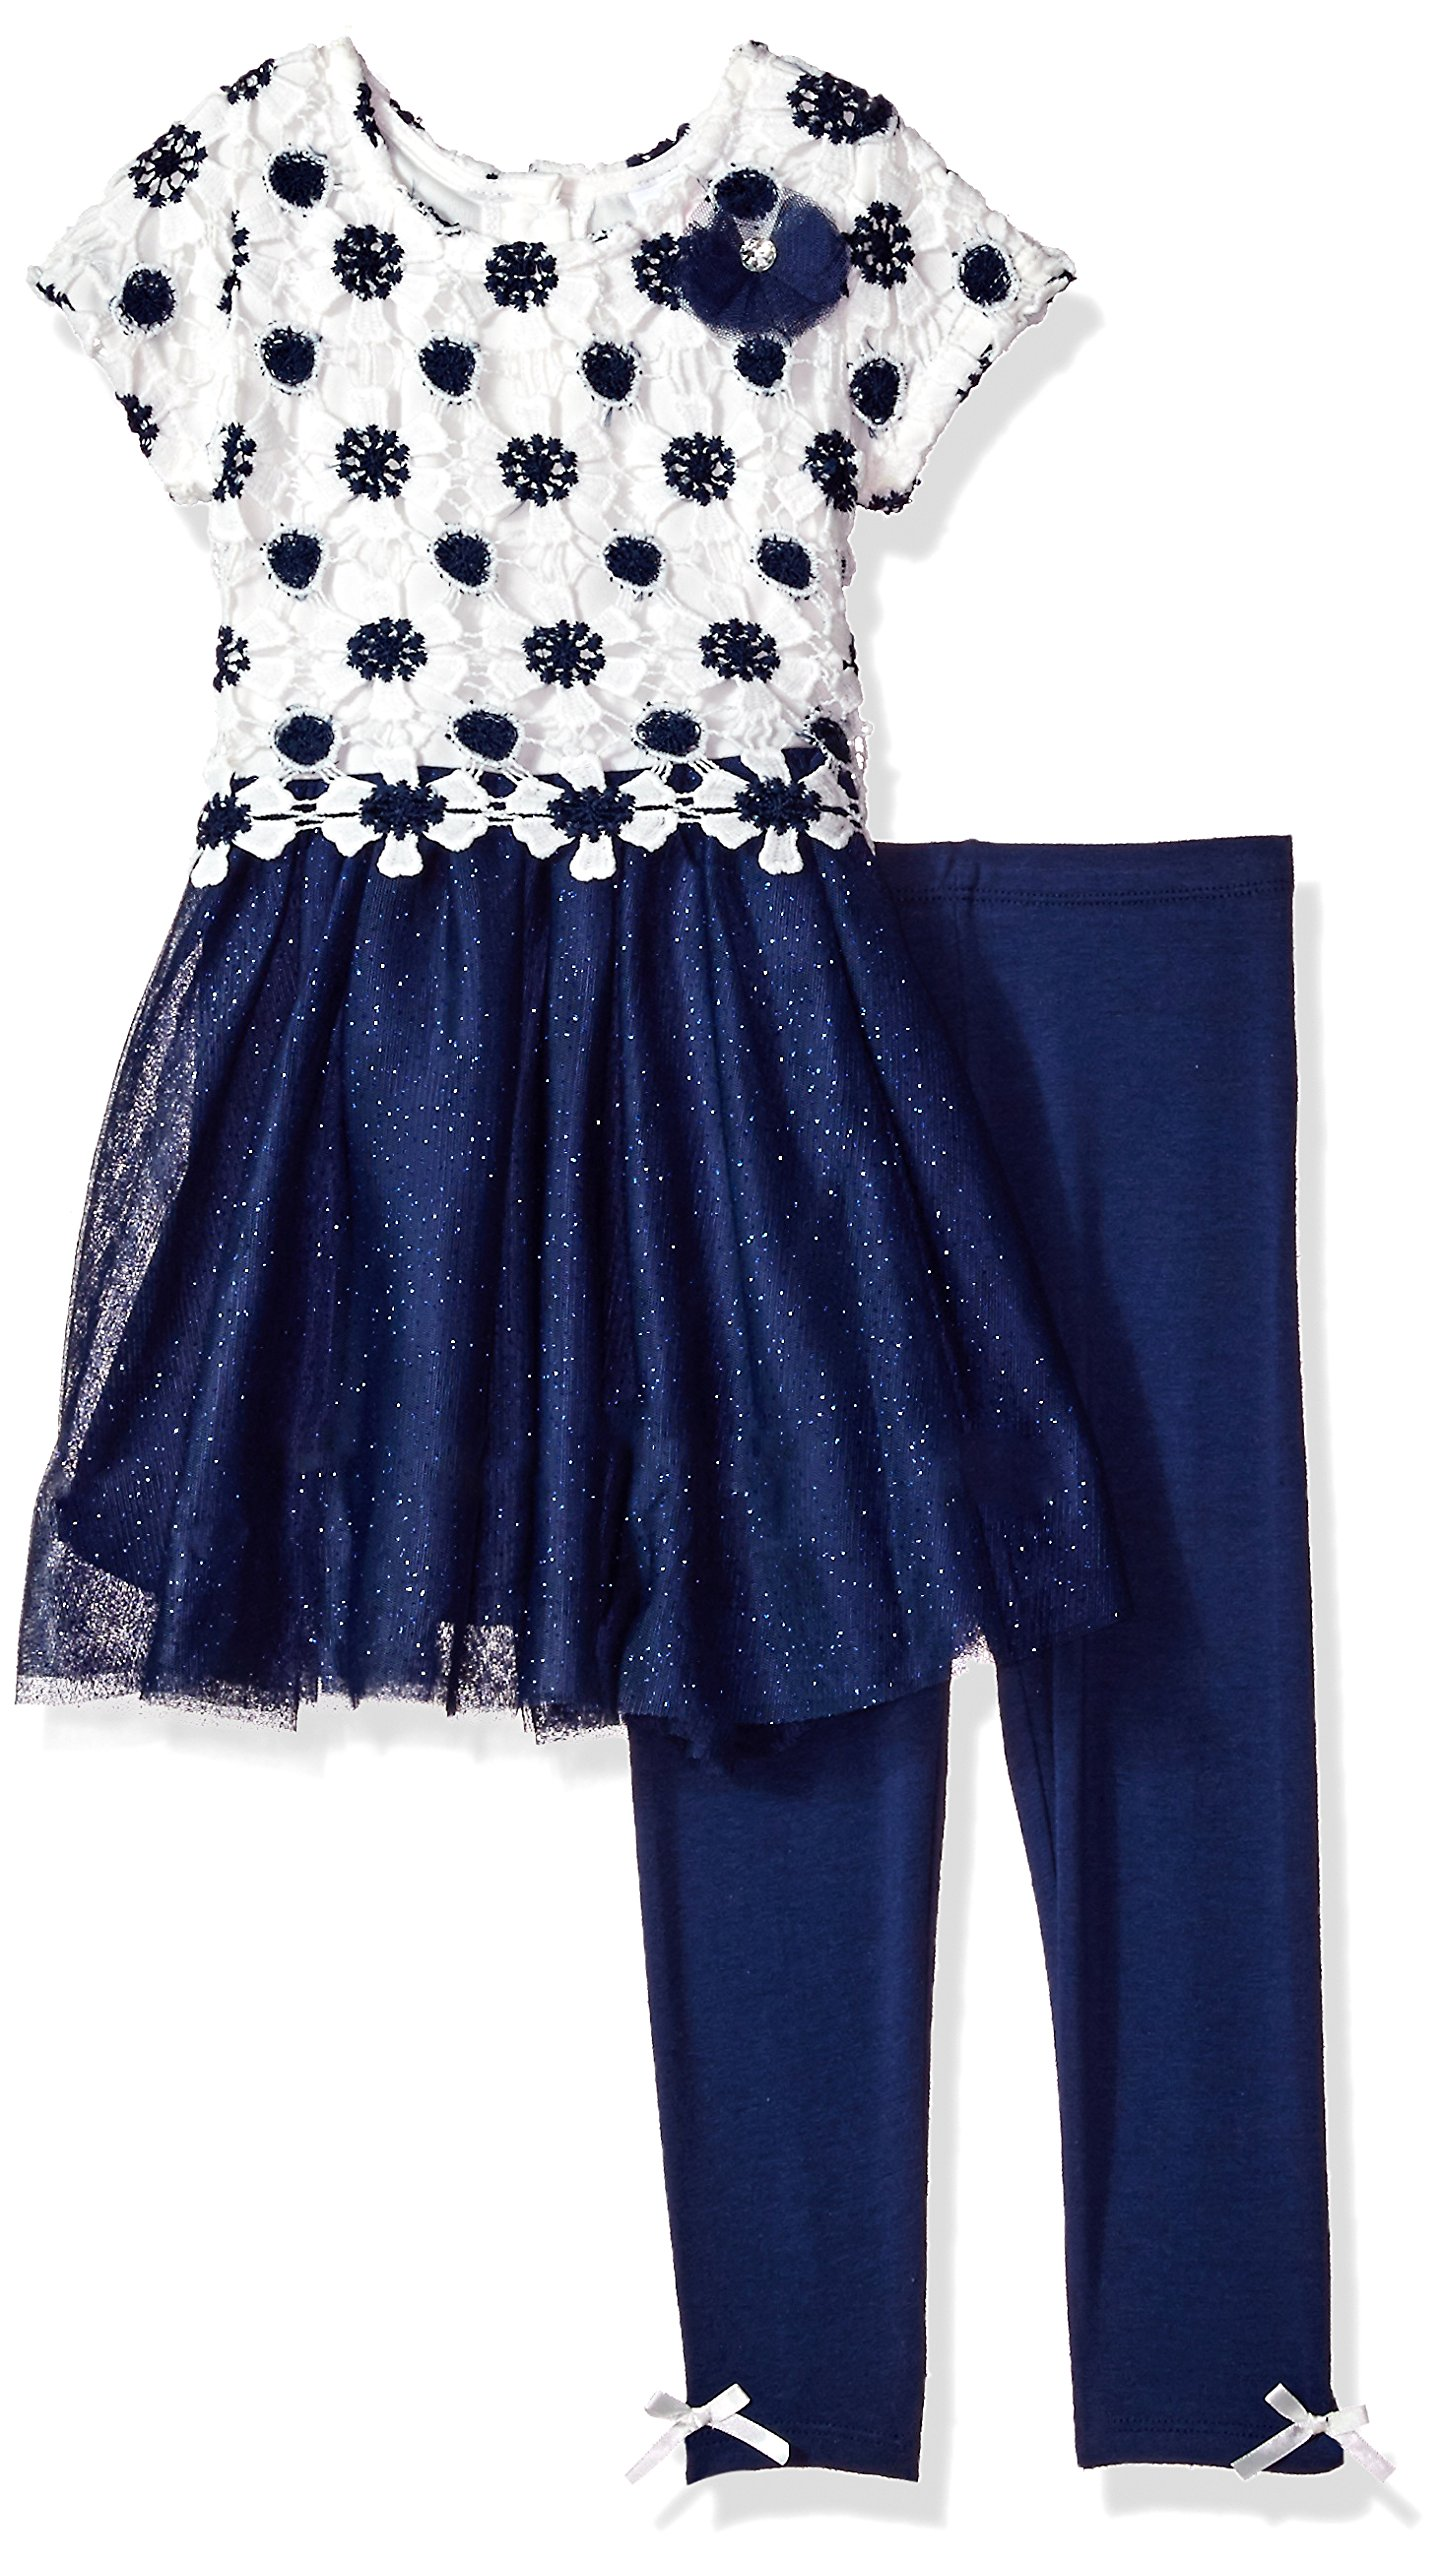 Nannette Toddler Girls' 2 Piece Dressy Top and Legging Set, Navy Blue, 2T